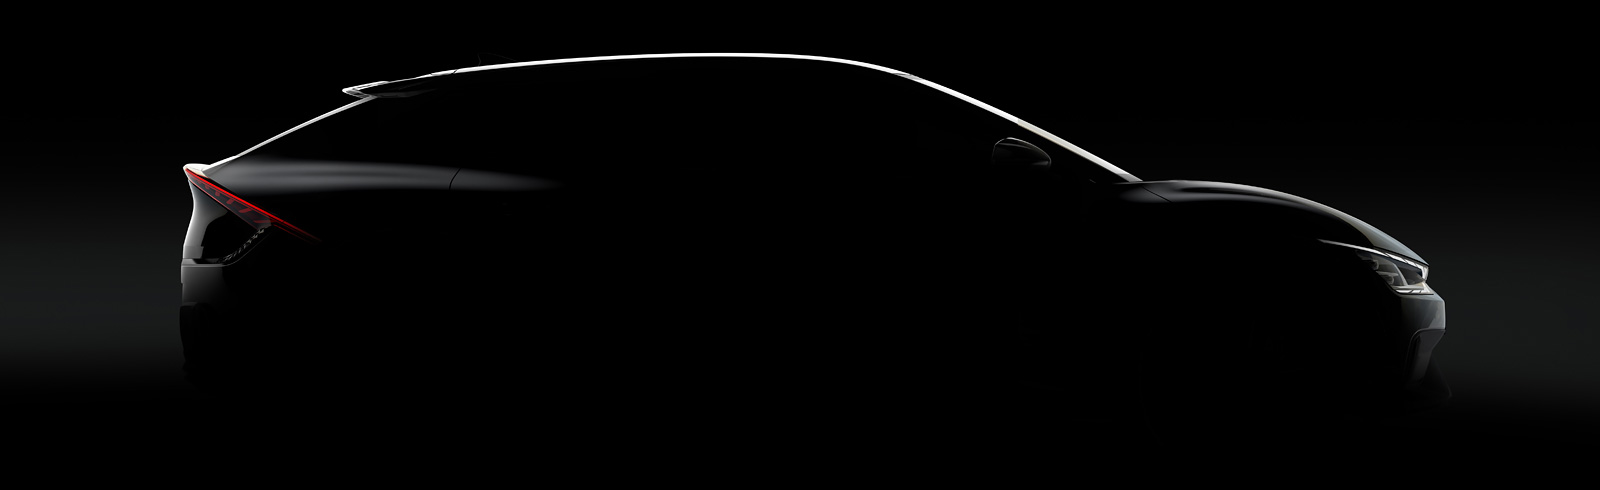 Kia teases EV6, its first dedicated EV; schedules world debut for the Q1 of 2021